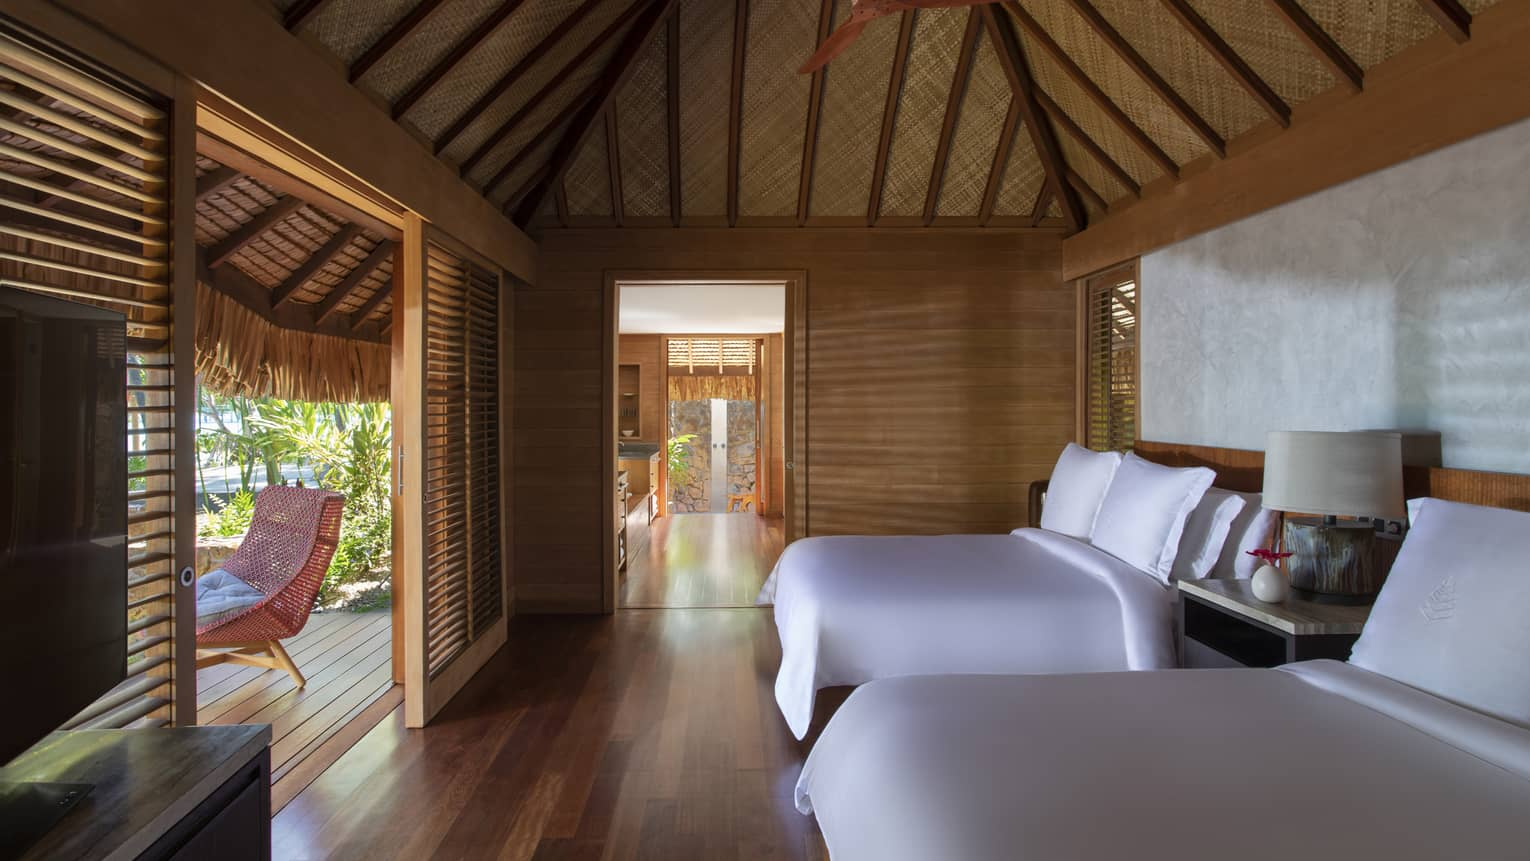 Two queen beds in a villa, with teak floors, a thatched roof and a walk-out patio